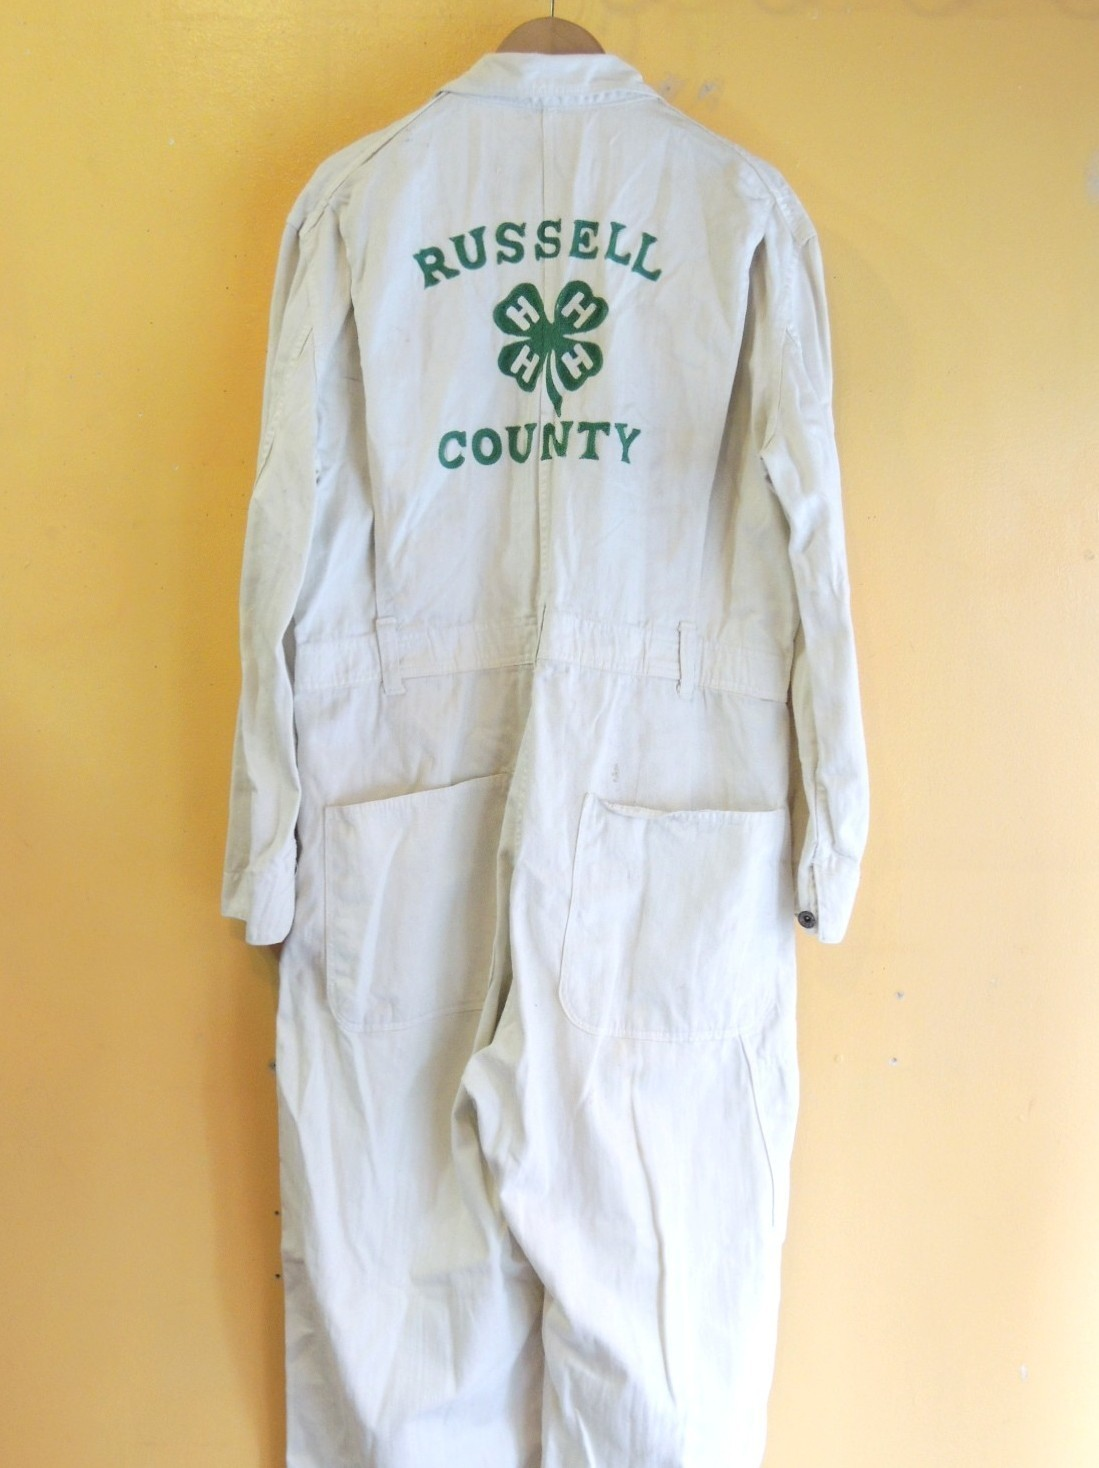 russellcountrycoverall02.JPG